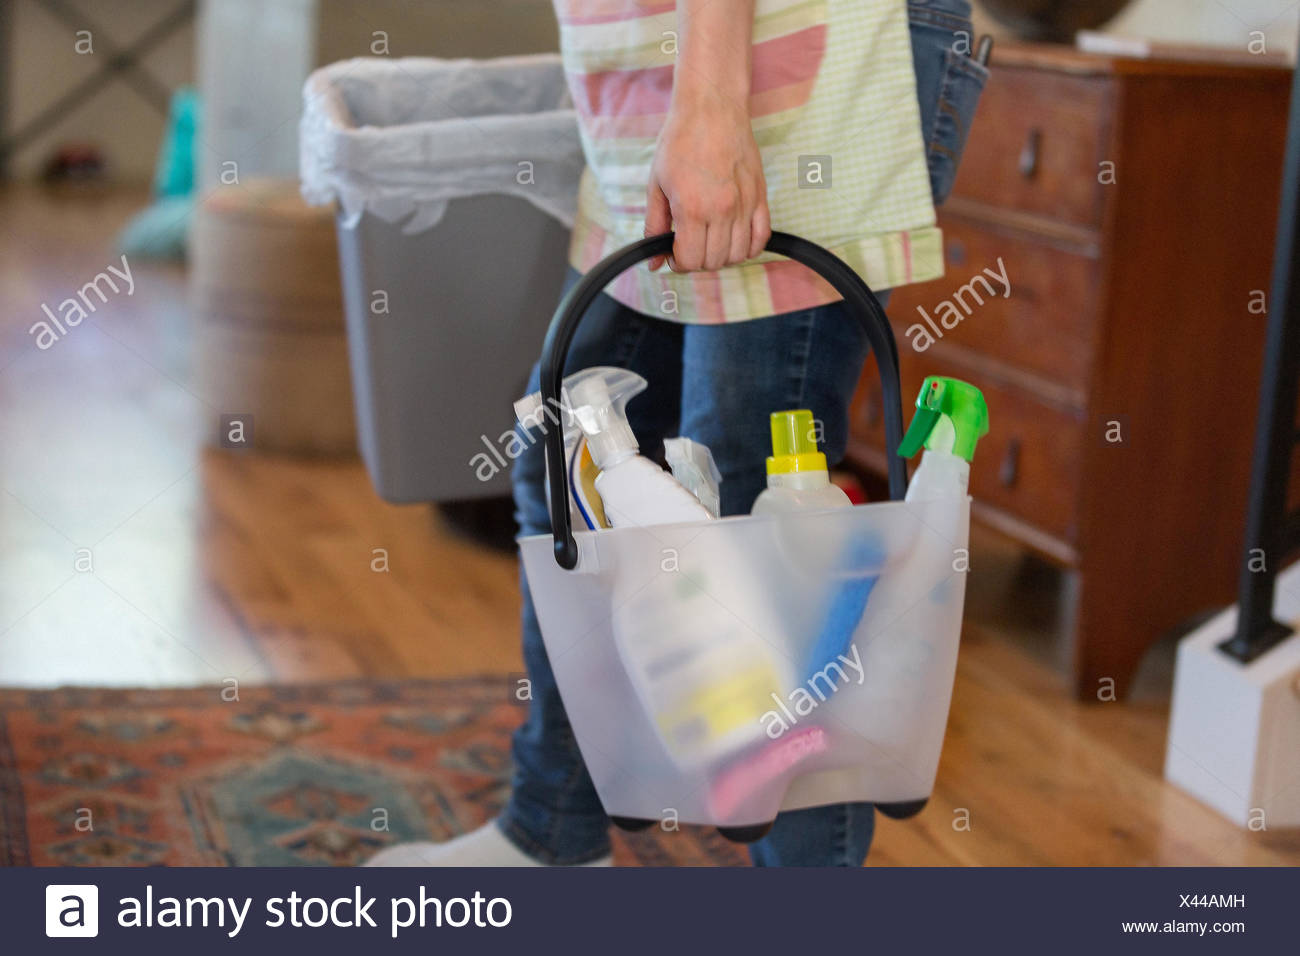 Young woman cleaning home with green cleaning products Stock Photo